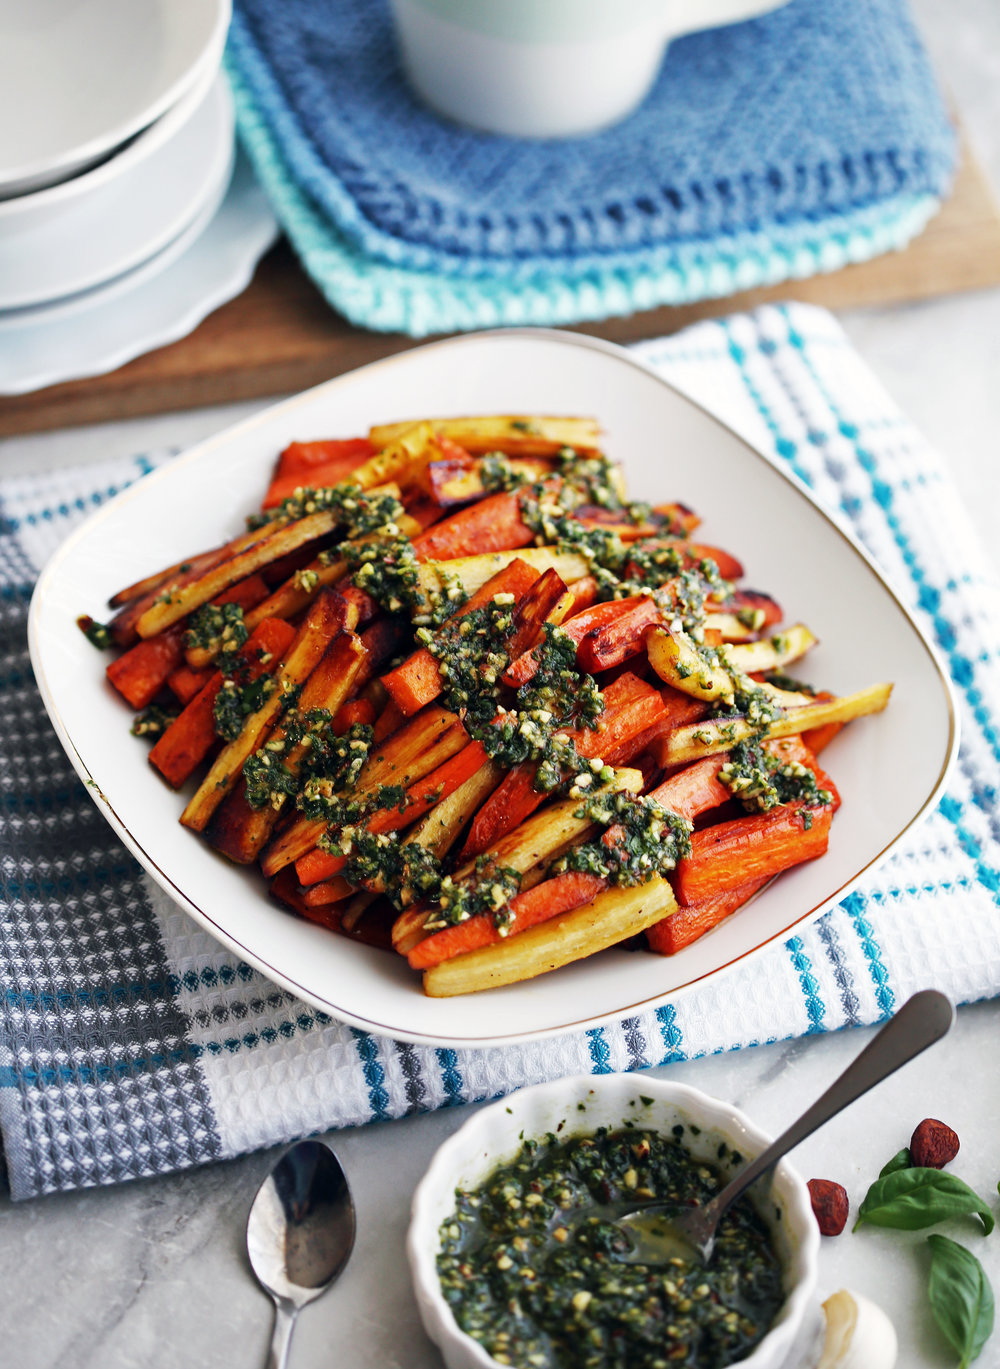 Roasted Balsamic Root Vegetables with Basil Almond Pesto on a white plate; more pesto in a small bowl on the side.